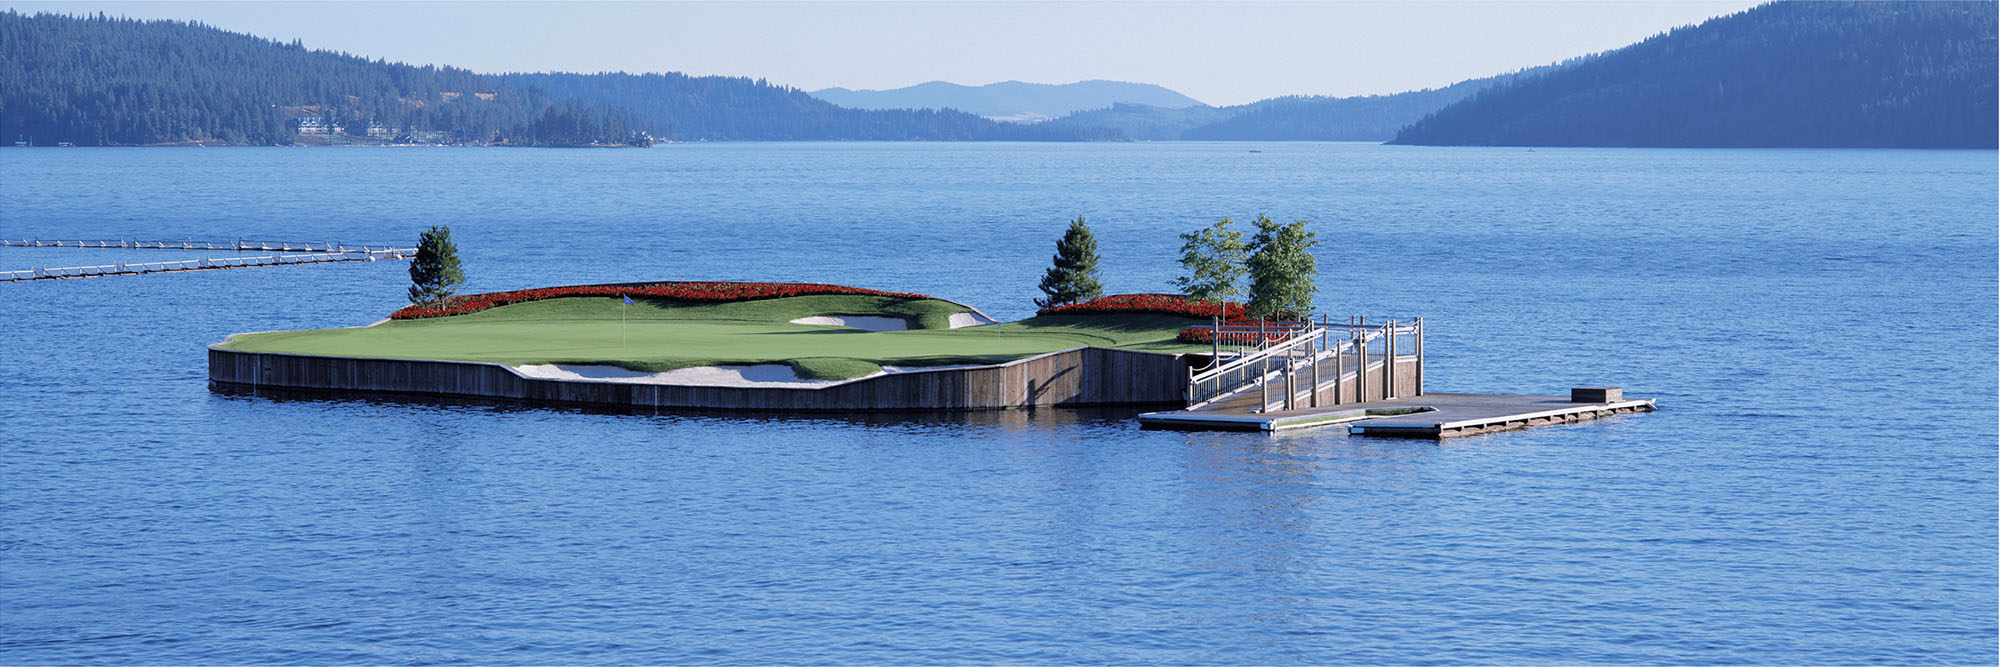 Golf Course Image - Coeur D' Alene No. 14